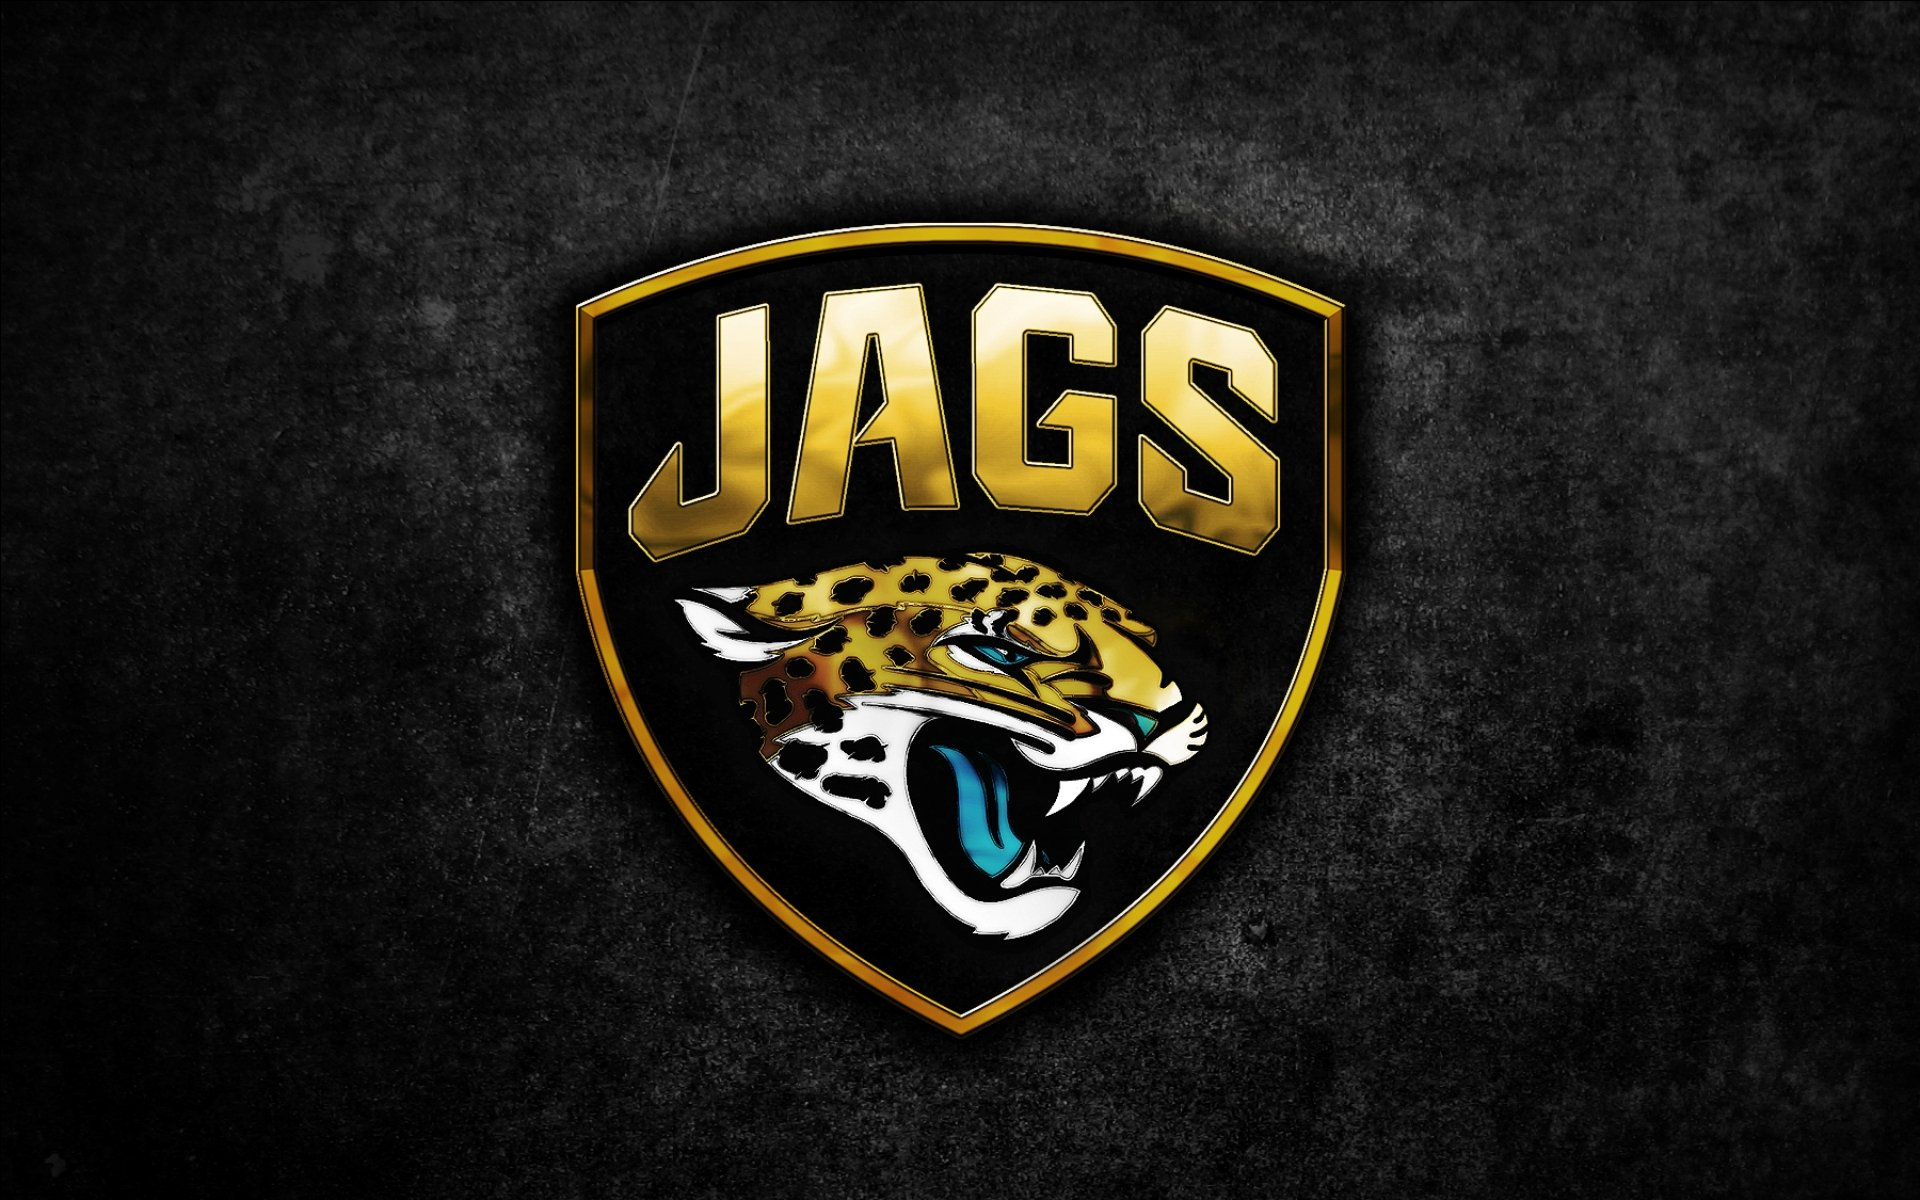 JACKSONVILLE JAGUARS nfl football r wallpaper background 1920x1200